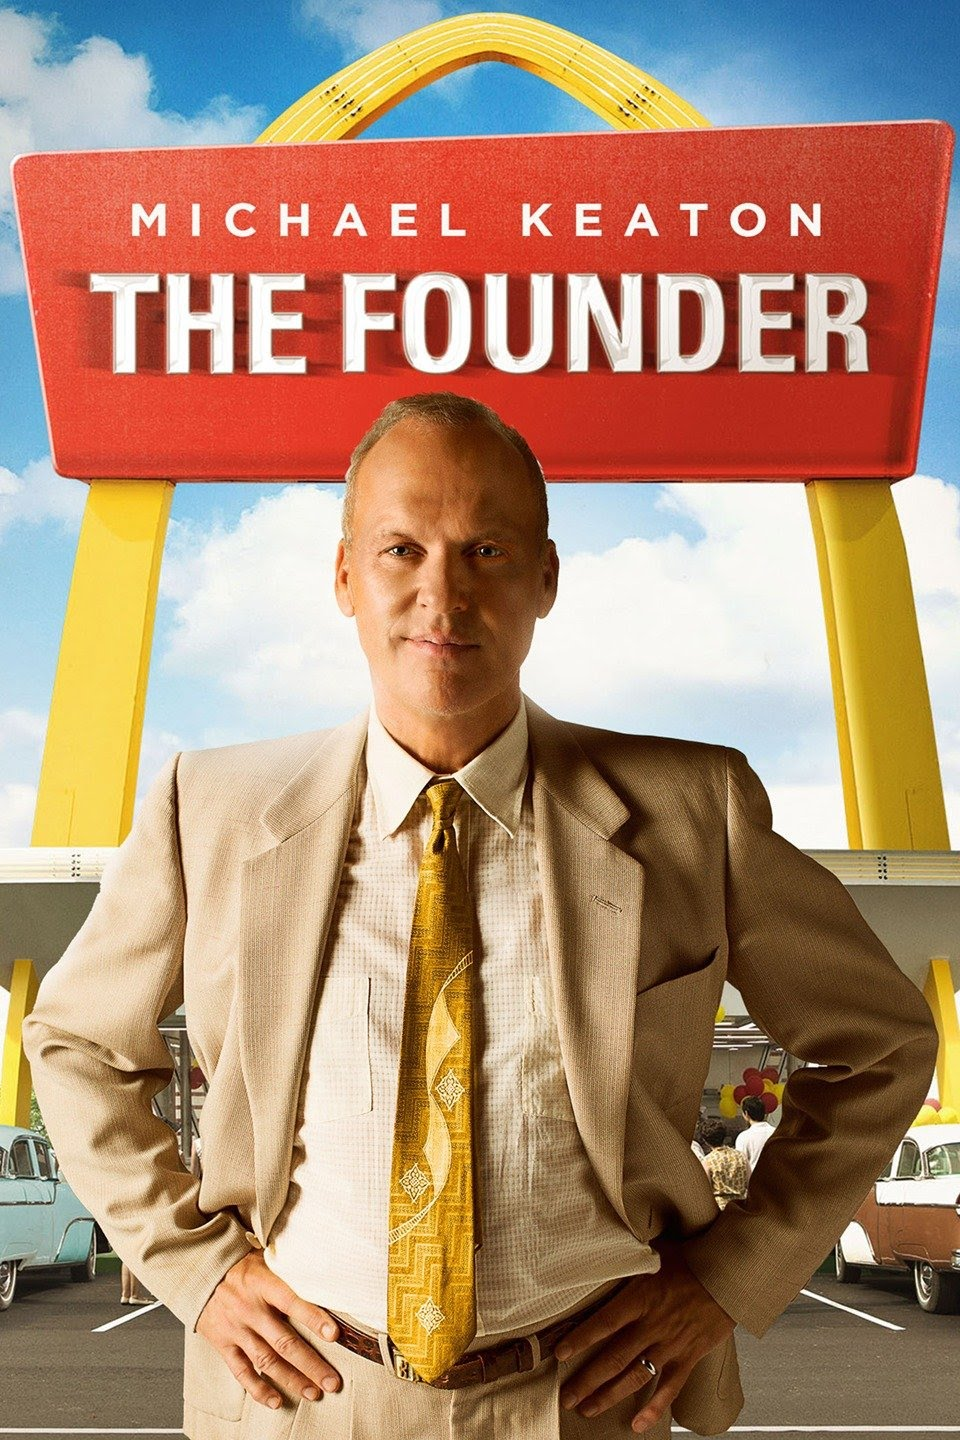 A poster for 'The Founder,' as described. One of my top films for entrepreneurs.